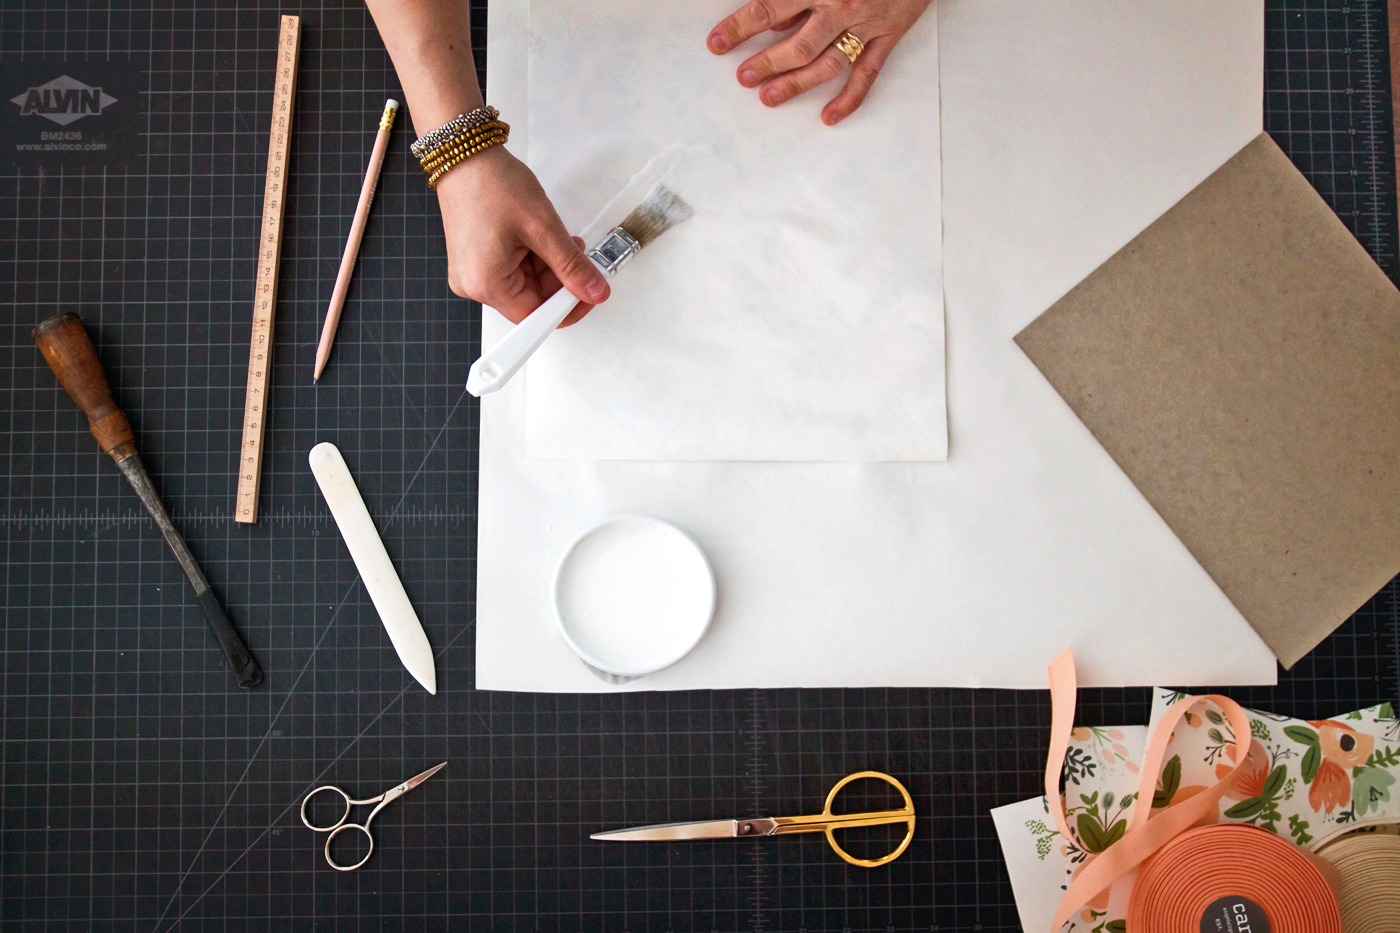 Step 2: Working quickly brush the glue onto the back of your paper. Then transfer your cardboard to the center and press down, working out any air bubbles with your hands or bone folder.